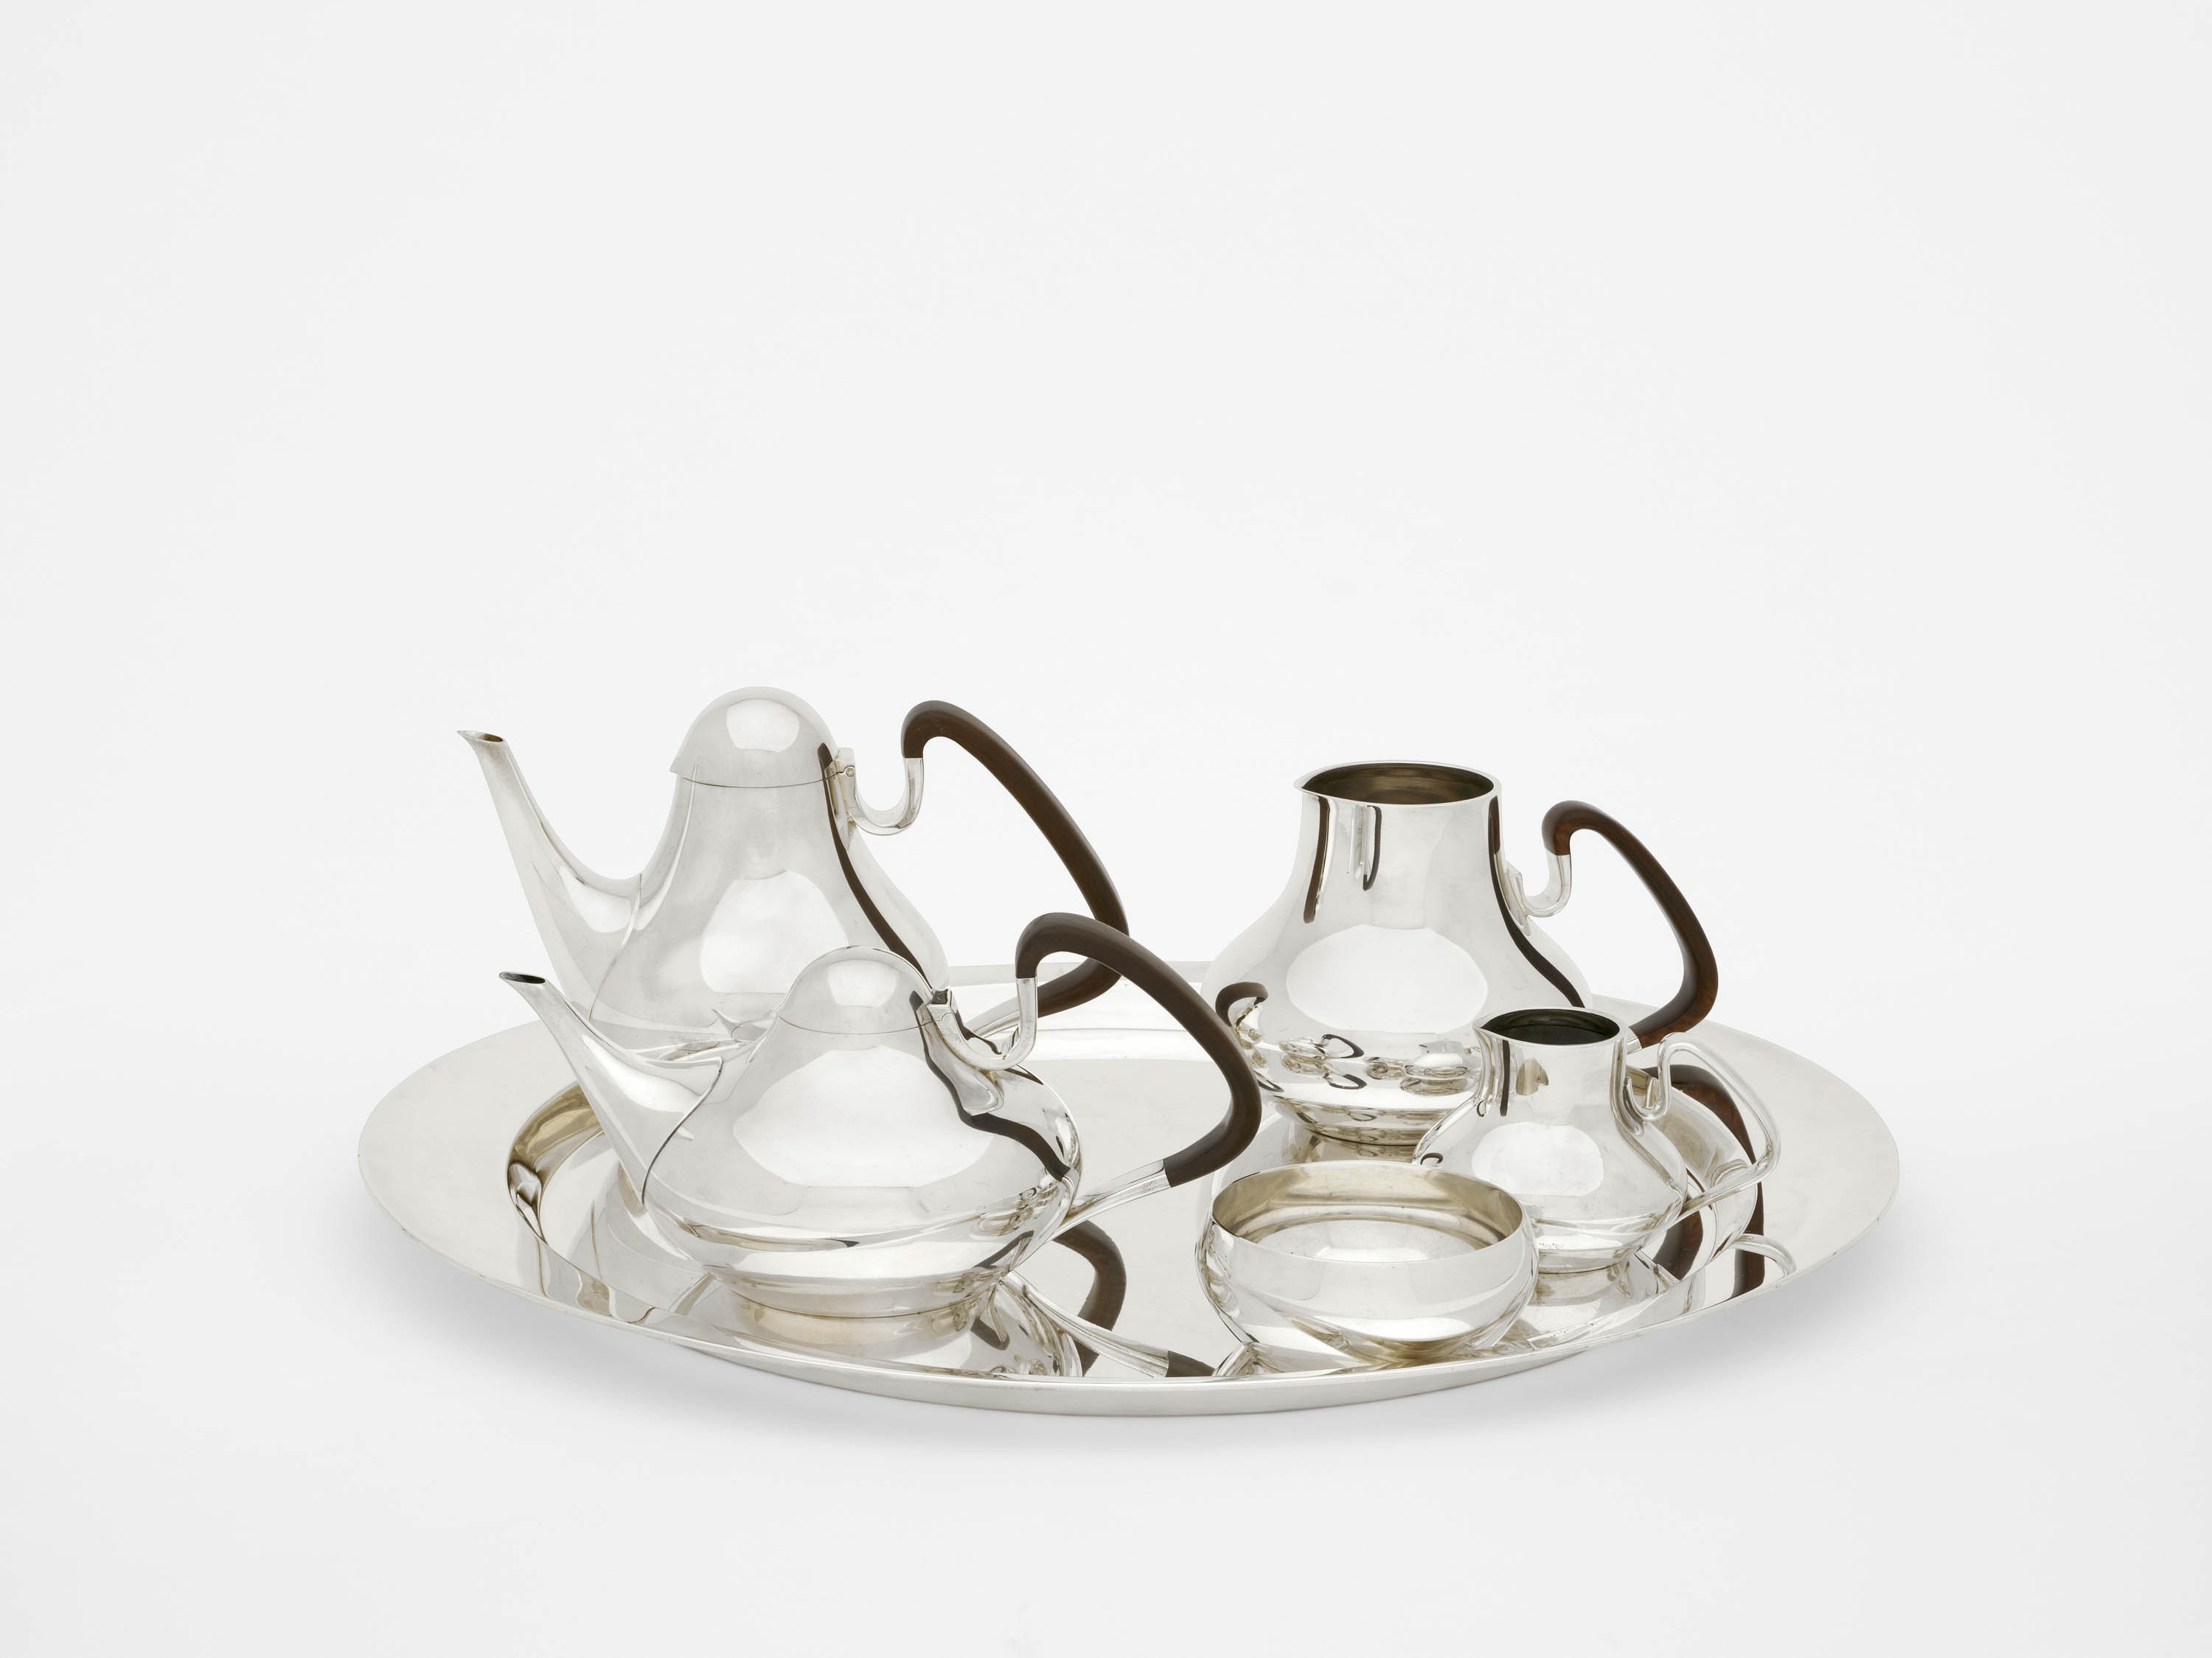 Henning Koppel. Coffee and Tea Service